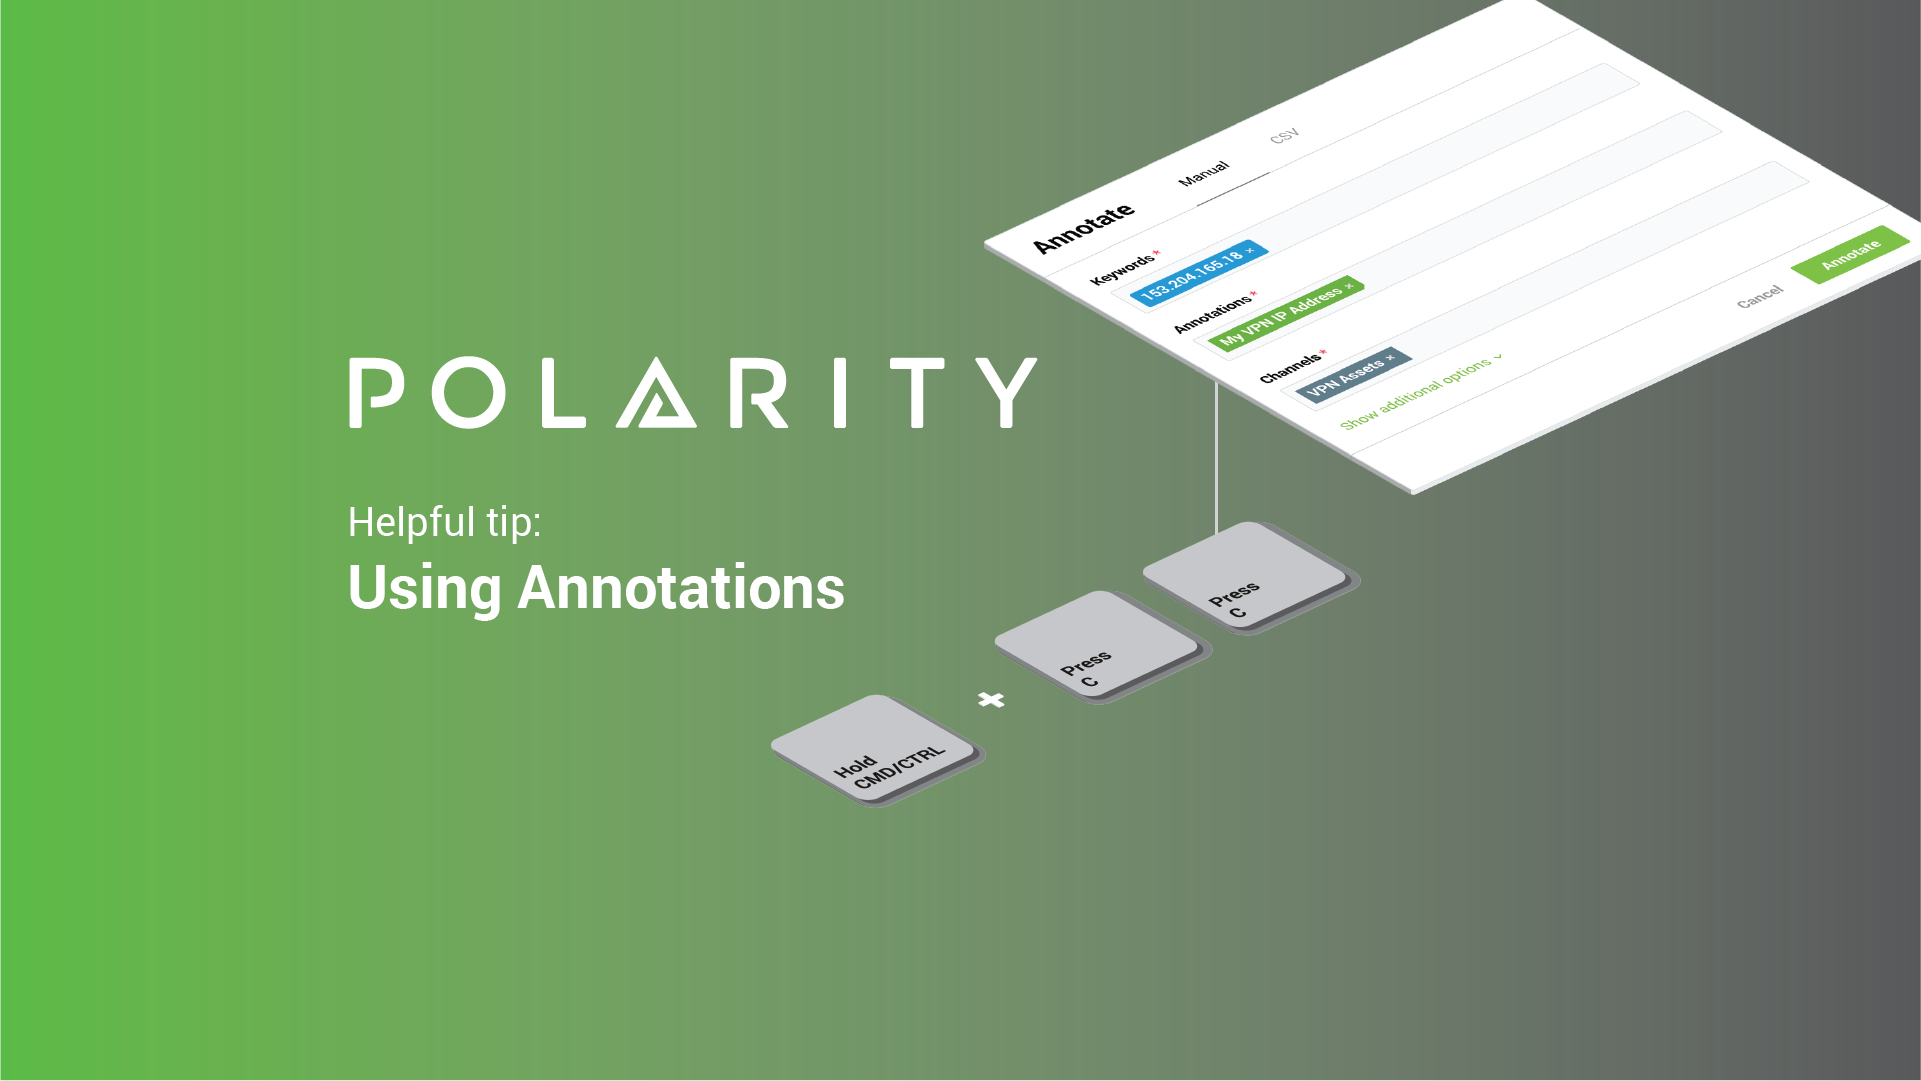 Polarity User Tips: Using Annotations in Polarity cover image